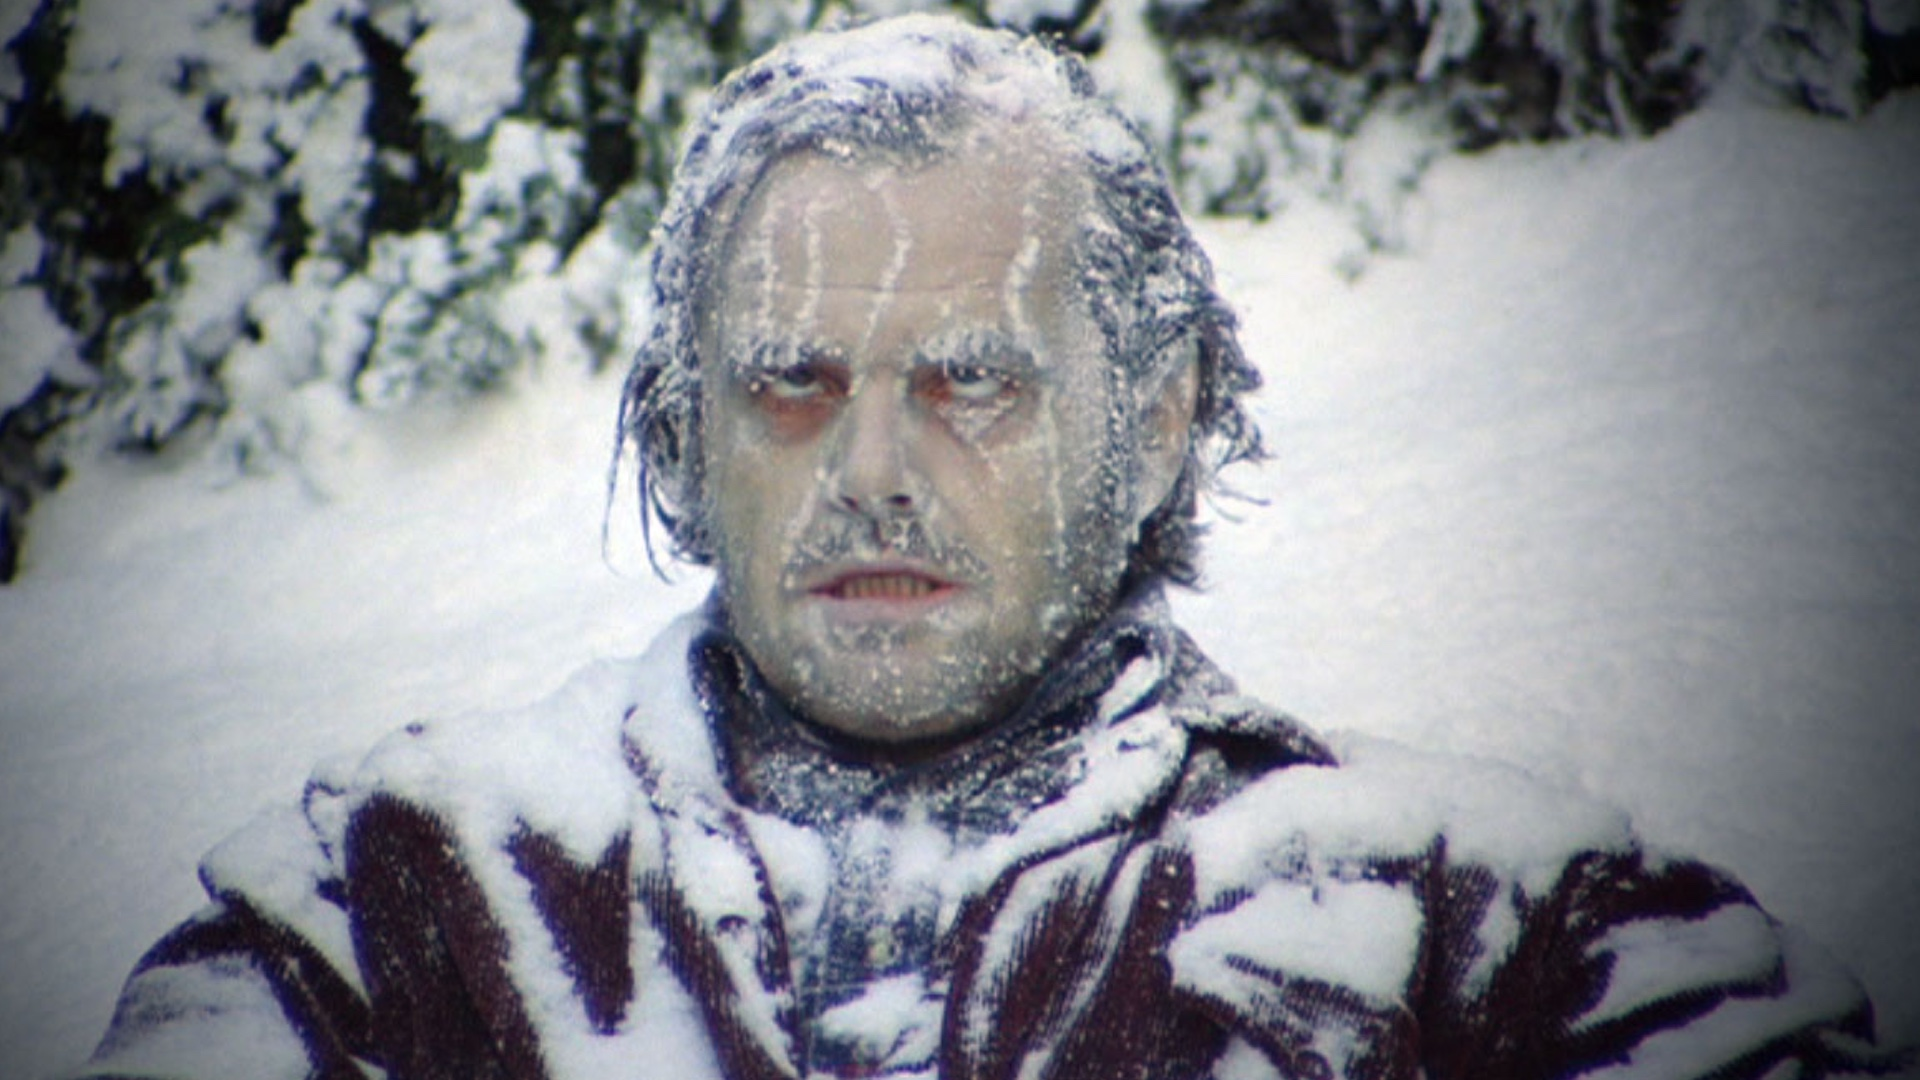 FORGET DIE HARD – THE SHINING IS THE BEST CHRISTMAS MOVIE EVER